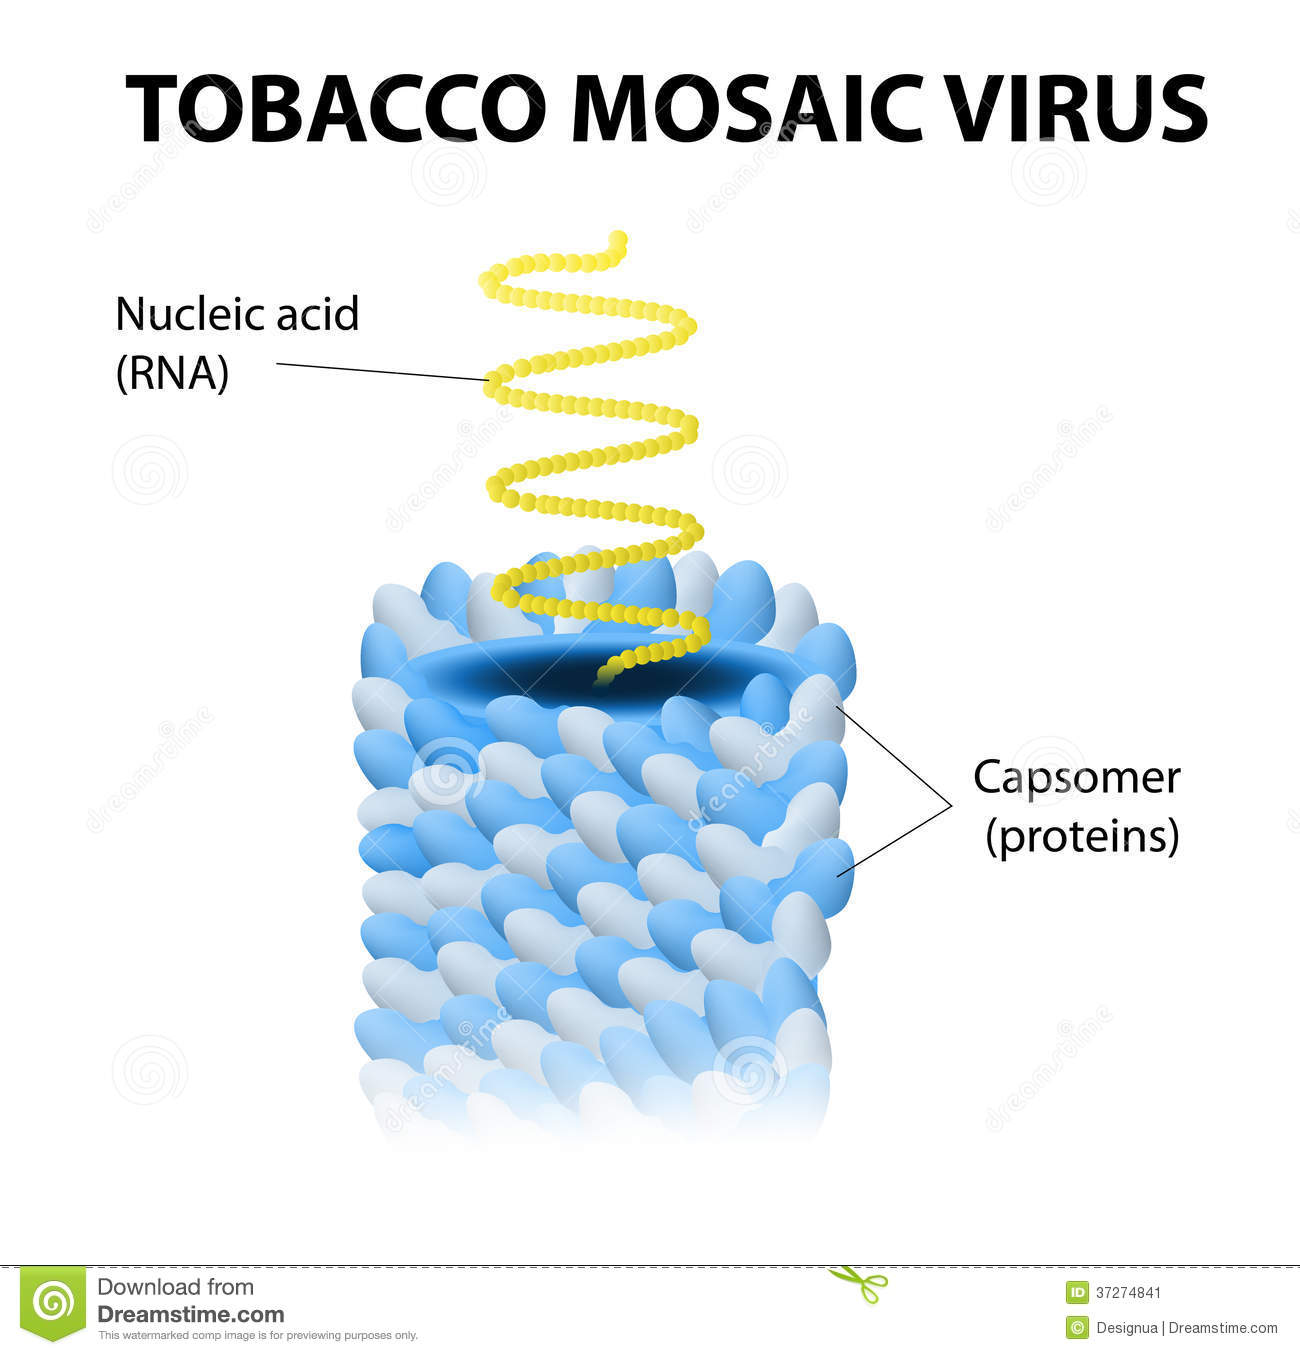 Stock Image Tobacco Mosaic Virus Schematic Model Tmv First To Ever Be Discovered Key To Gene Therapy Image37274841 on dna diagram labeled